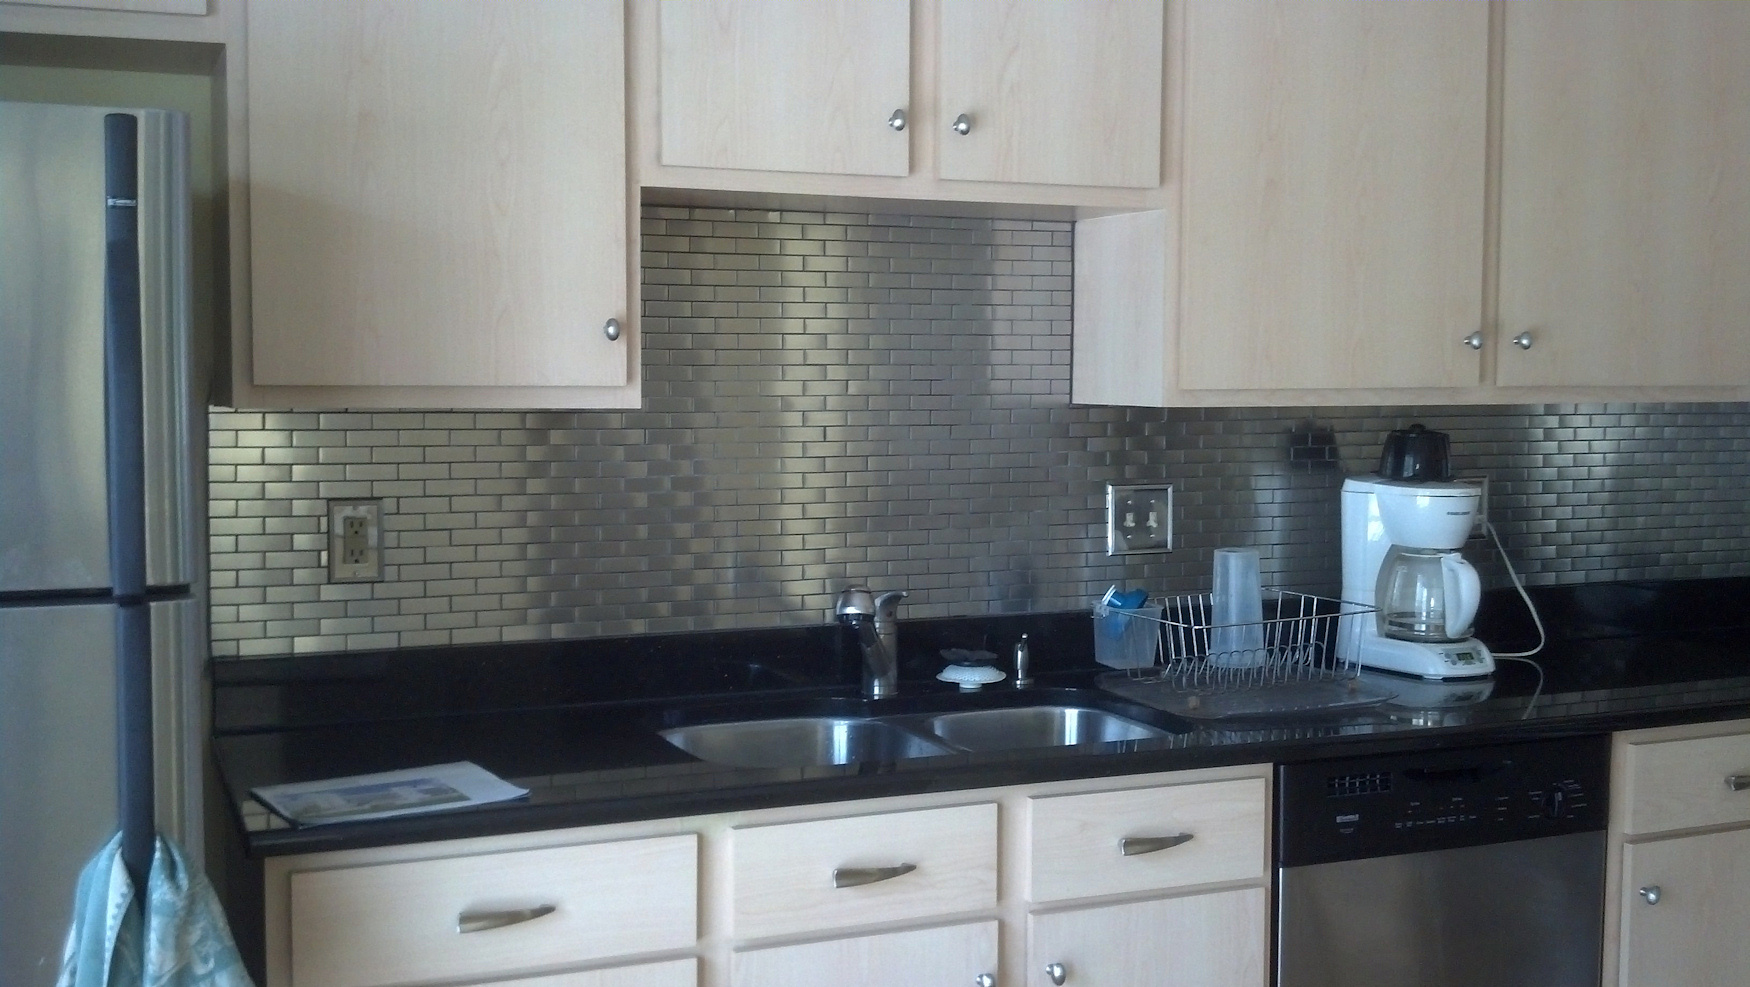 5 diy stainless steel kitchen makeovers on the cheap do Kitchen backsplash ideas stainless steel